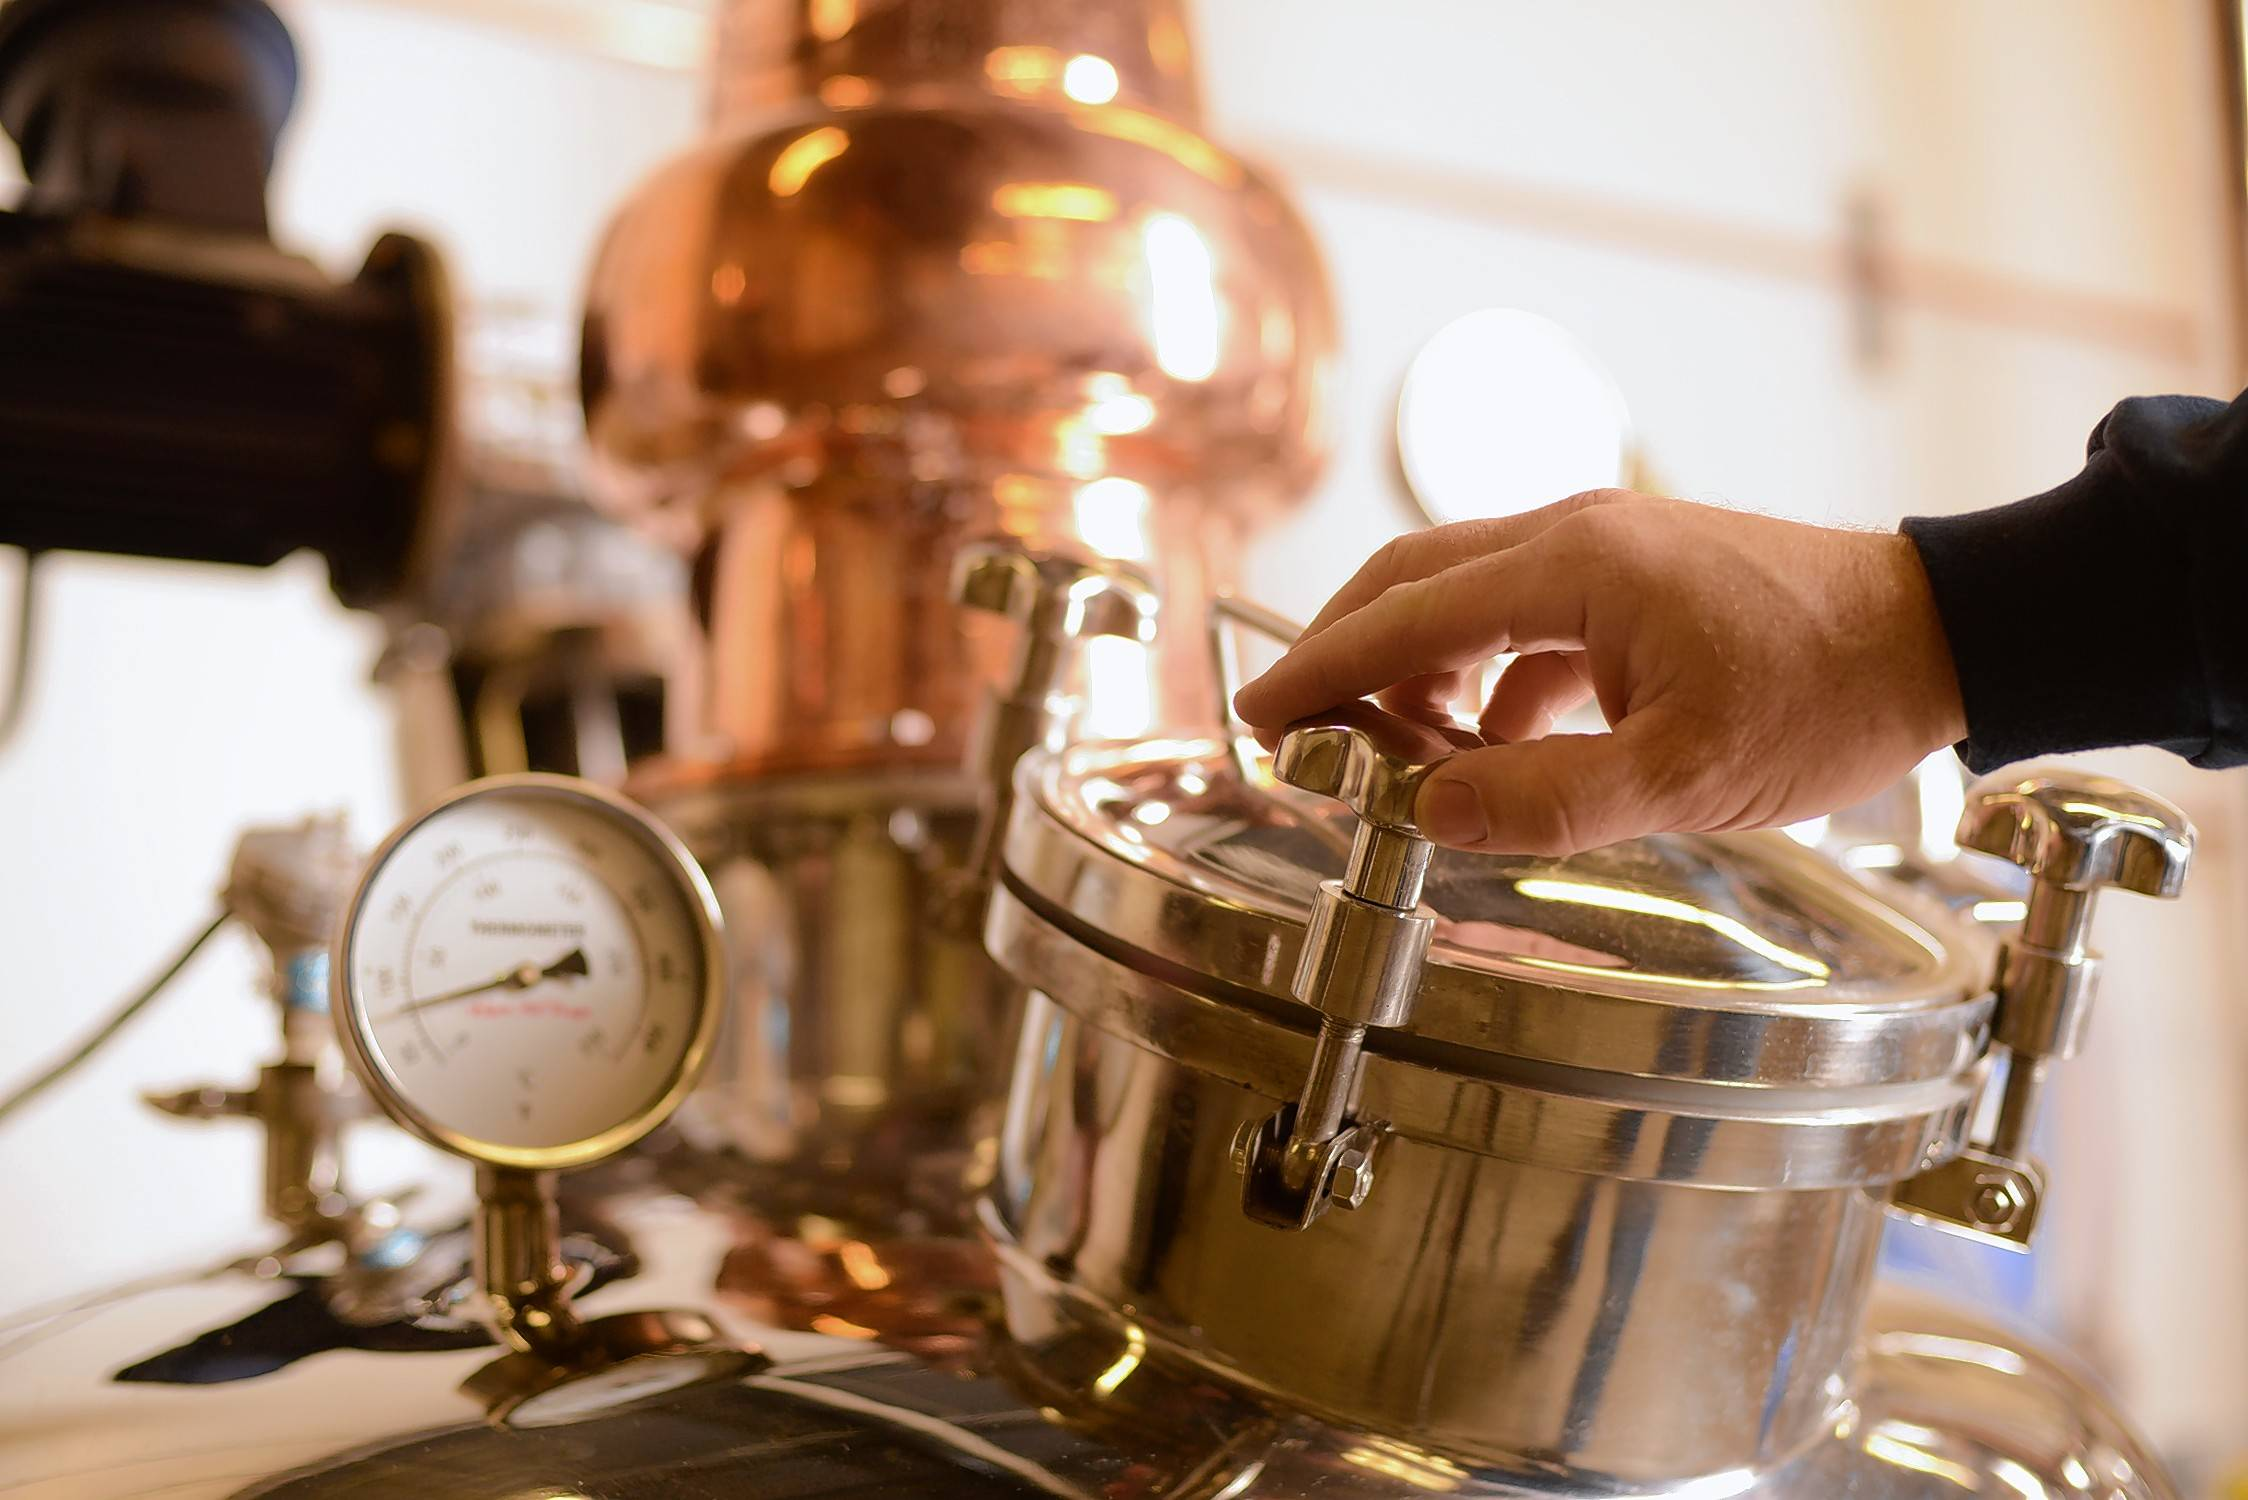 The 35- to 40-minute tour at Fox River Distilling in Geneva starts with a lesson on the history of distilling and where the industry is heading today.